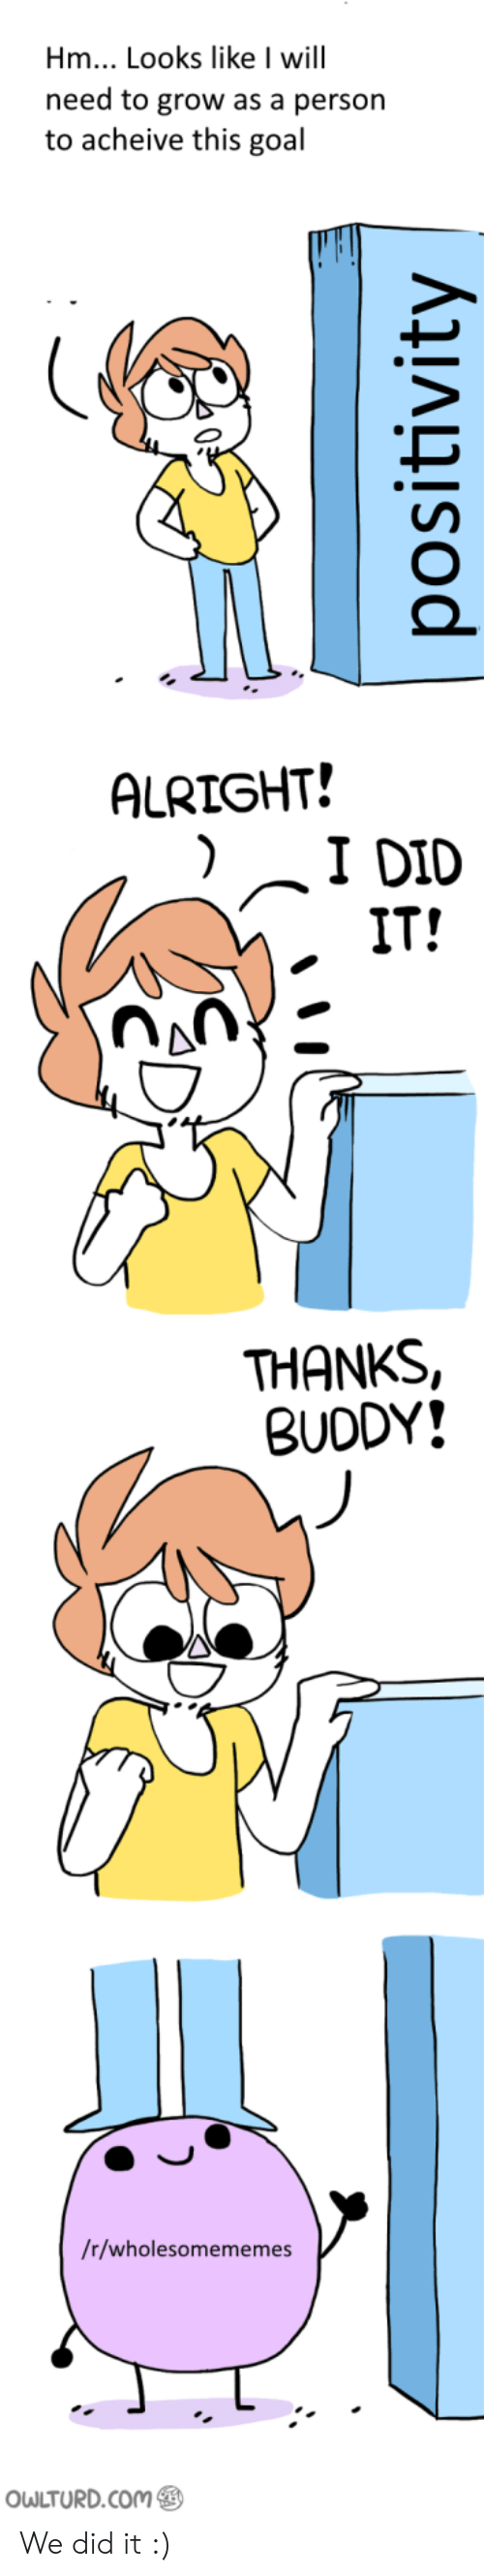 Thanks Buddy: Hm... Looks like I will  need to grow as a person  to acheive this goal  ALRIGHT!  IT!  THANKS,  BUDDY!  /r/wholesomememes  Ou LTURD.com We did it :)